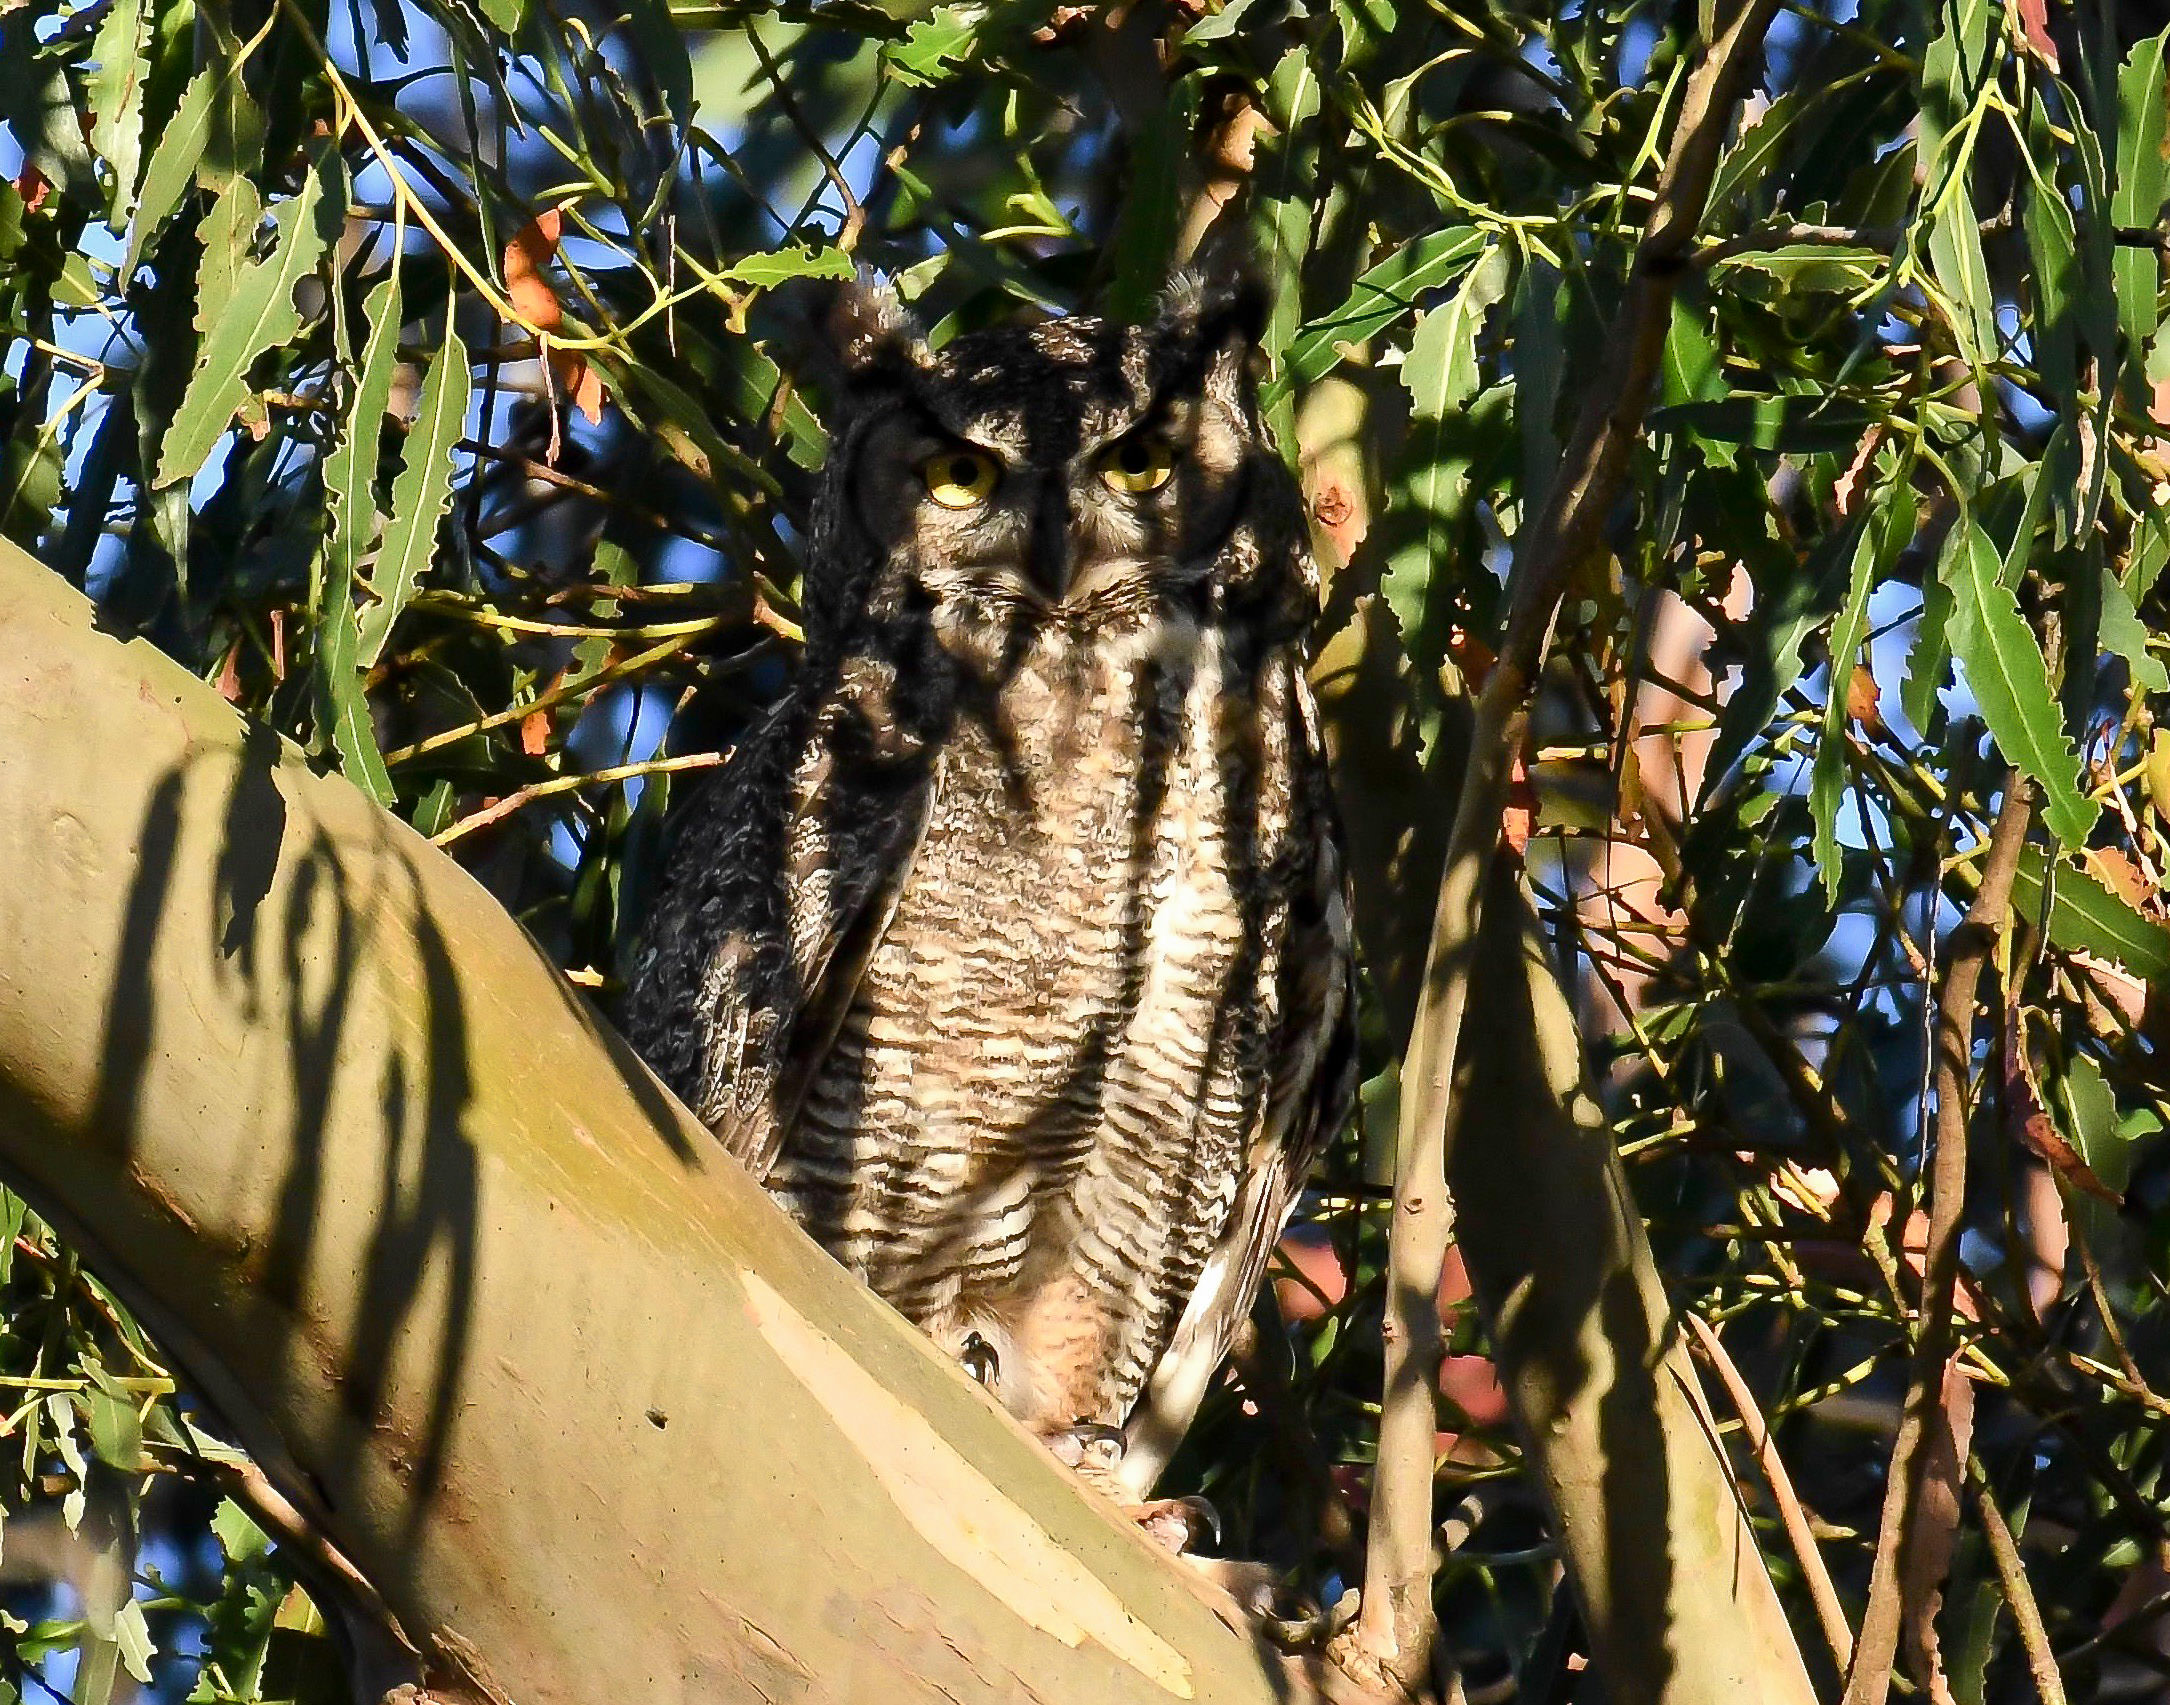 mother great horned owl guarding her young.jpg